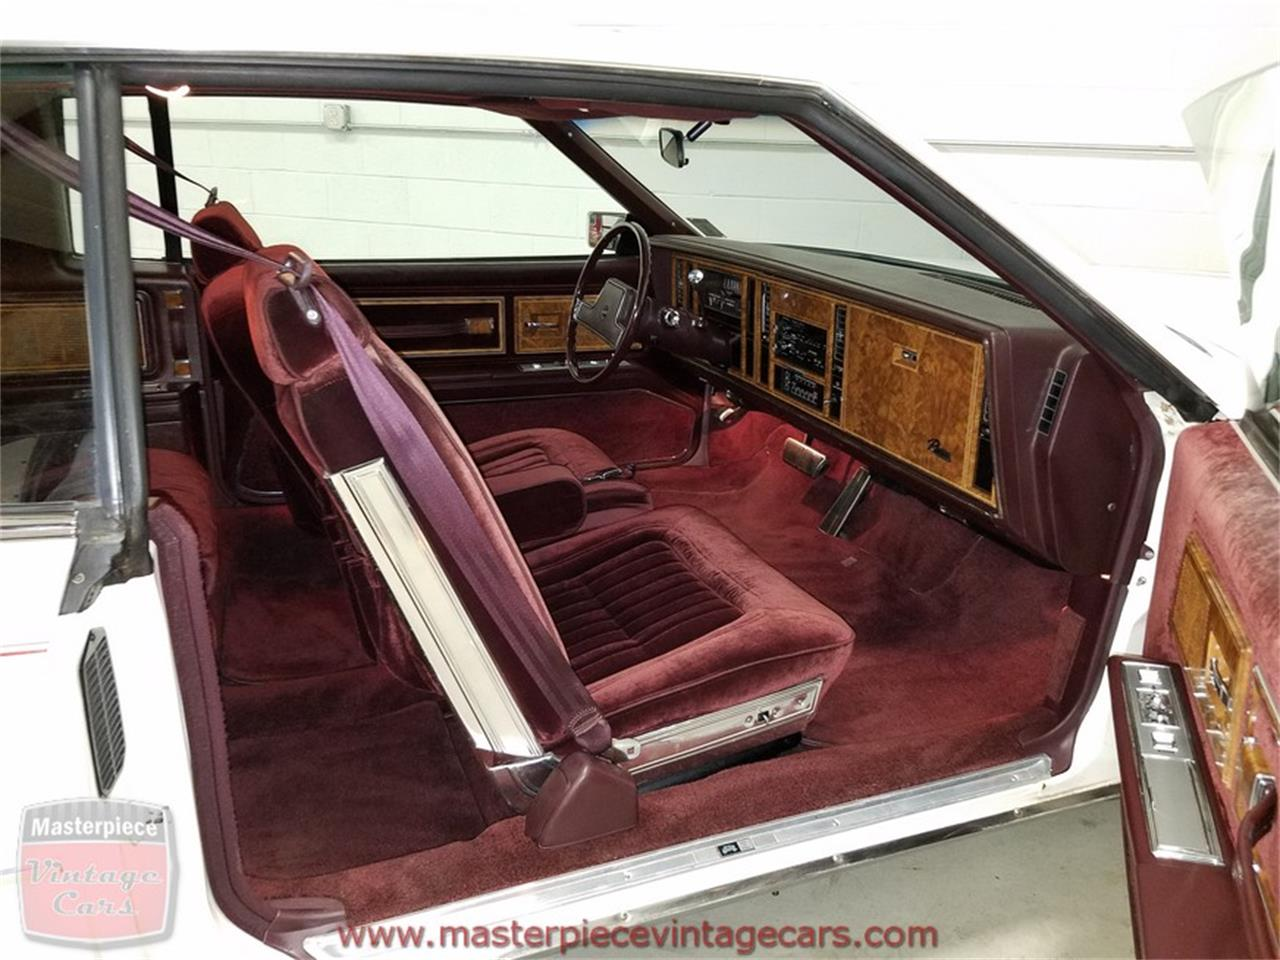 Large Picture of 1985 Buick Riviera located in Indiana - $8,950.00 - L82V